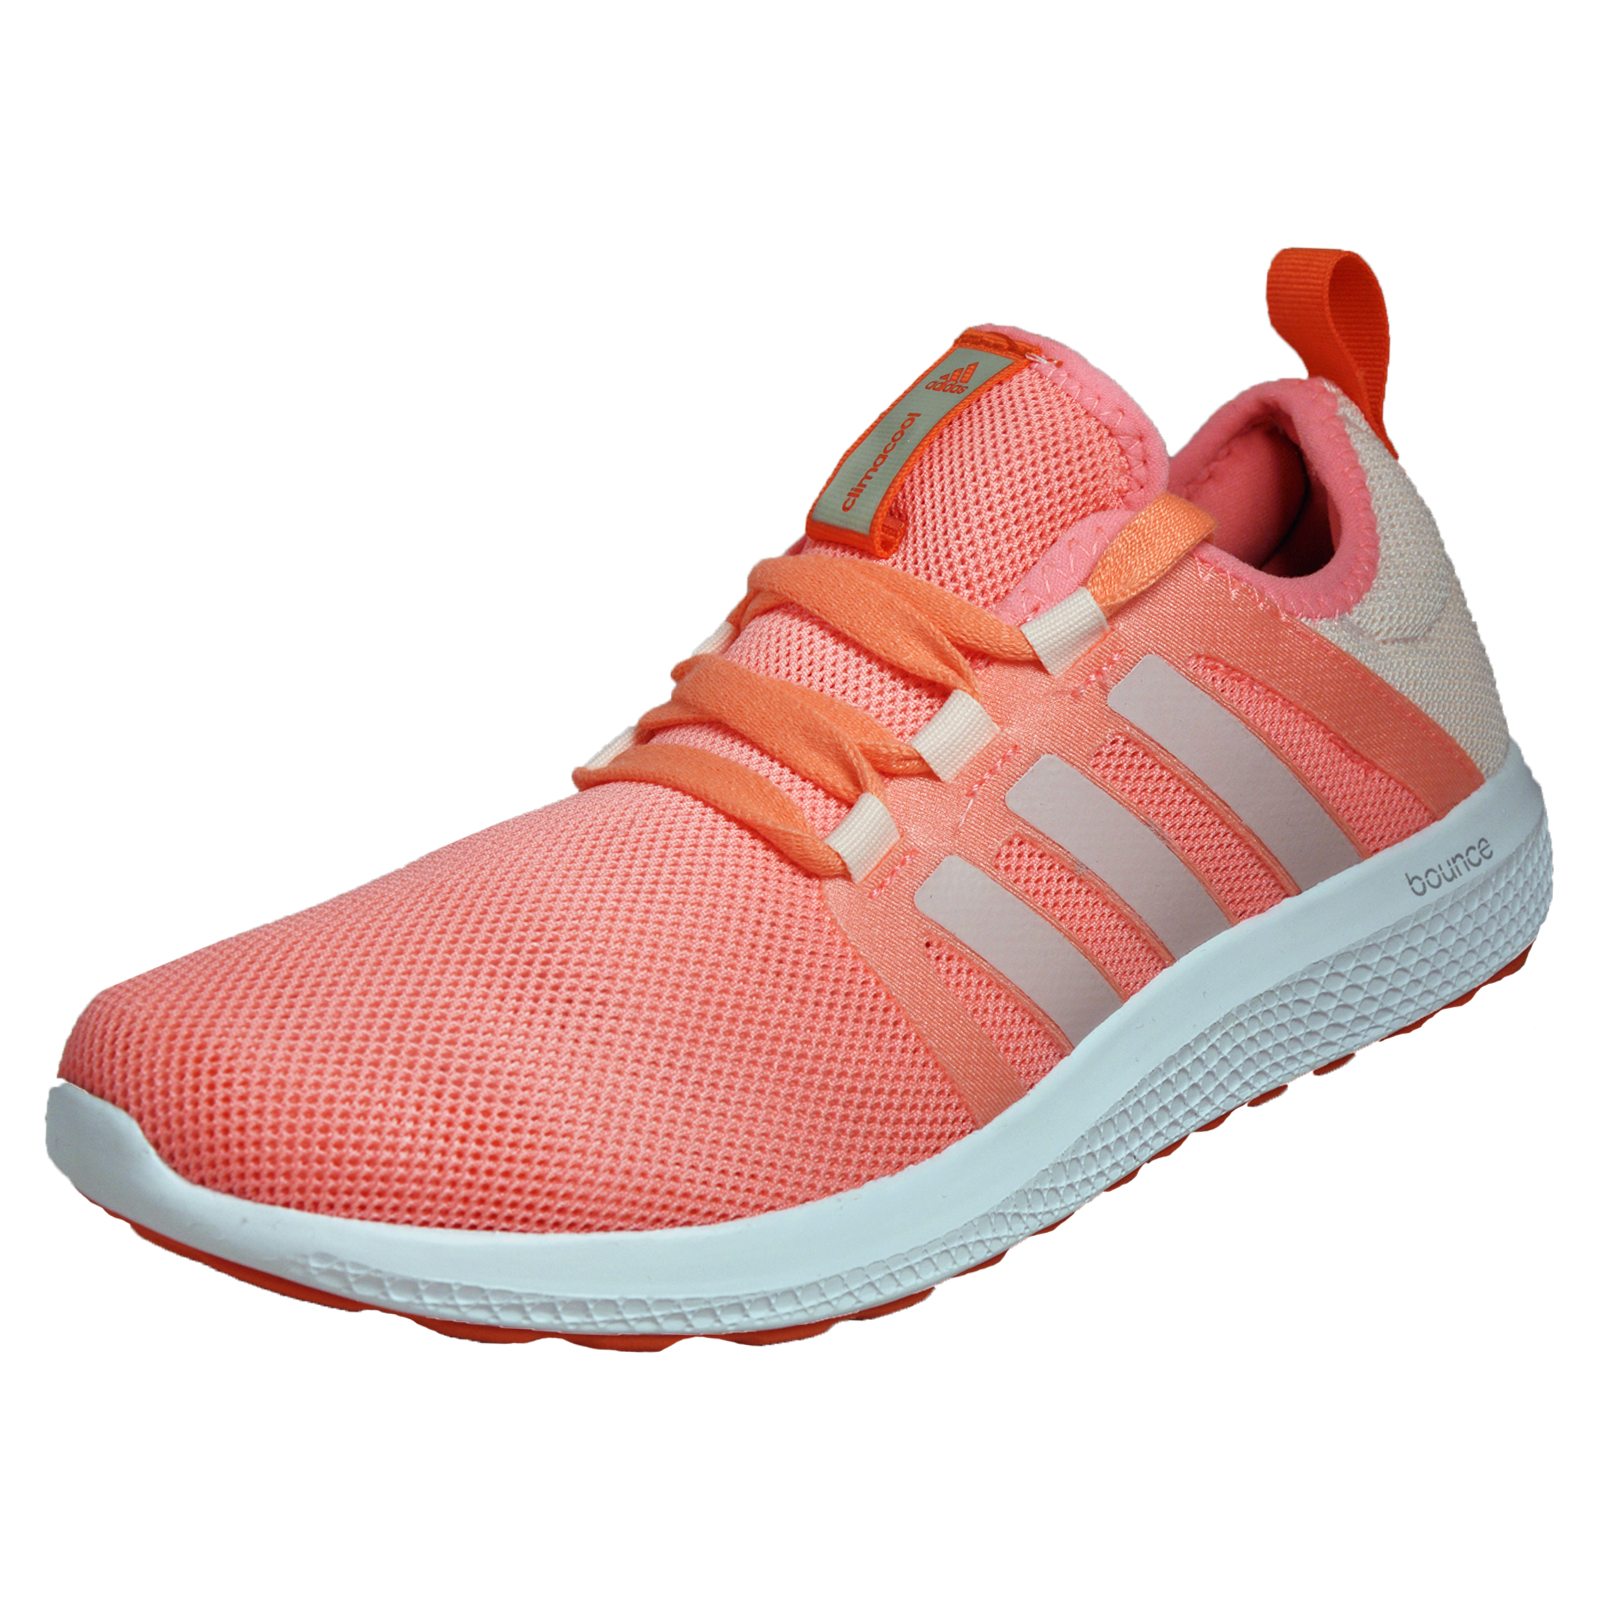 60cb99750 Details about Adidas ClimaCool CC Fresh Bounce Womens Running Shoes Fitness  Trainers Peach